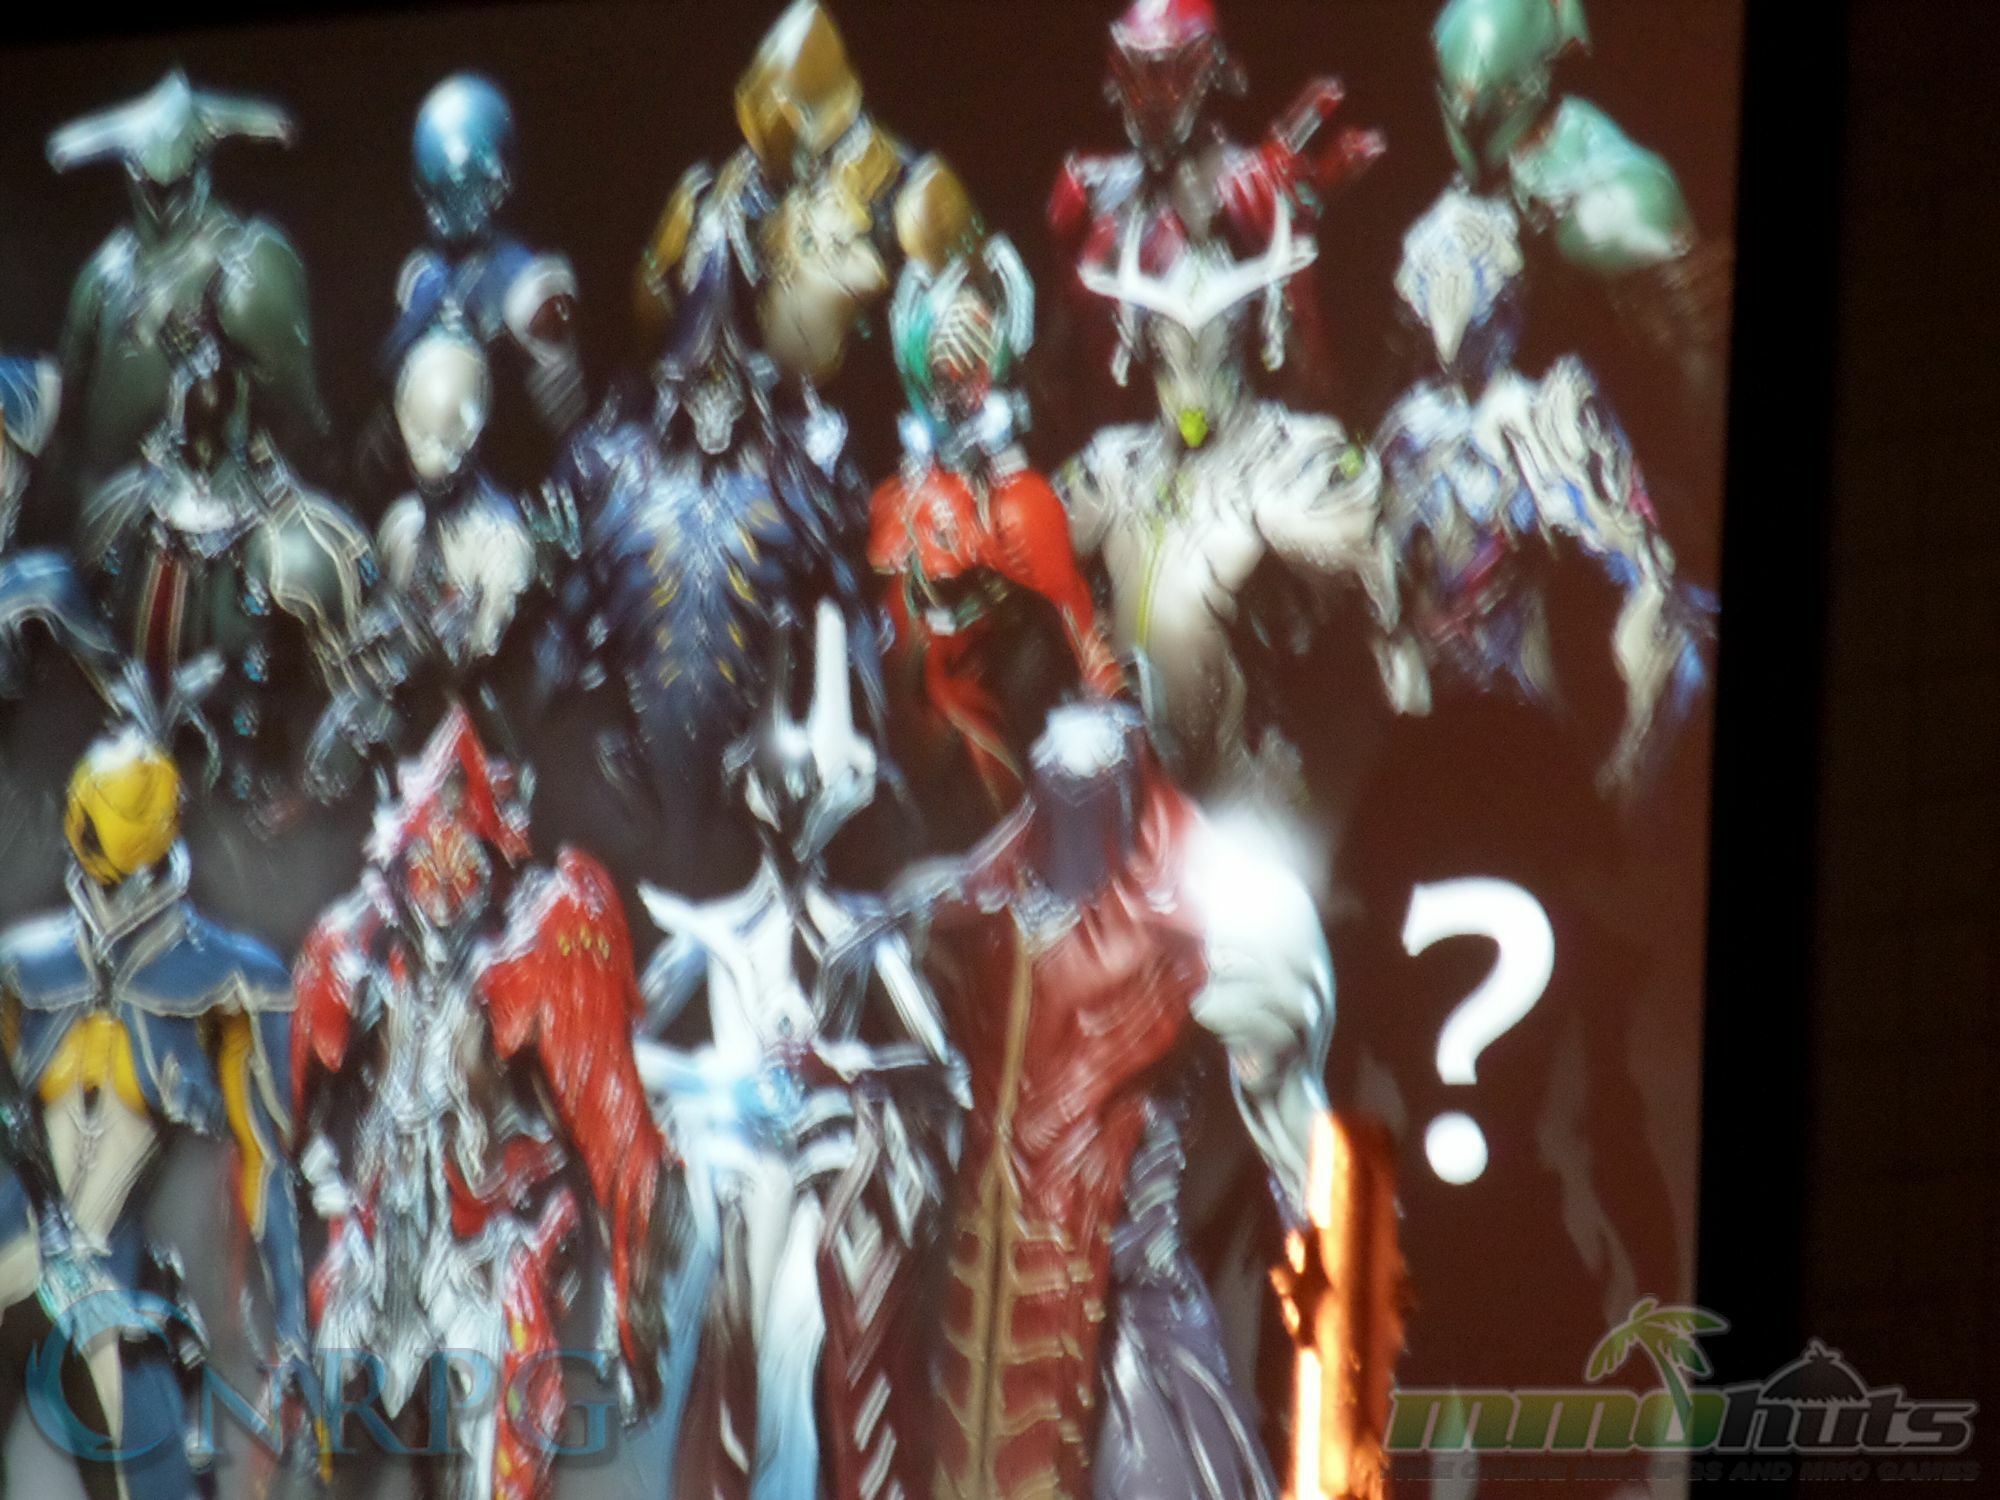 NYCC 2015 Day 3 Warframe Reveal